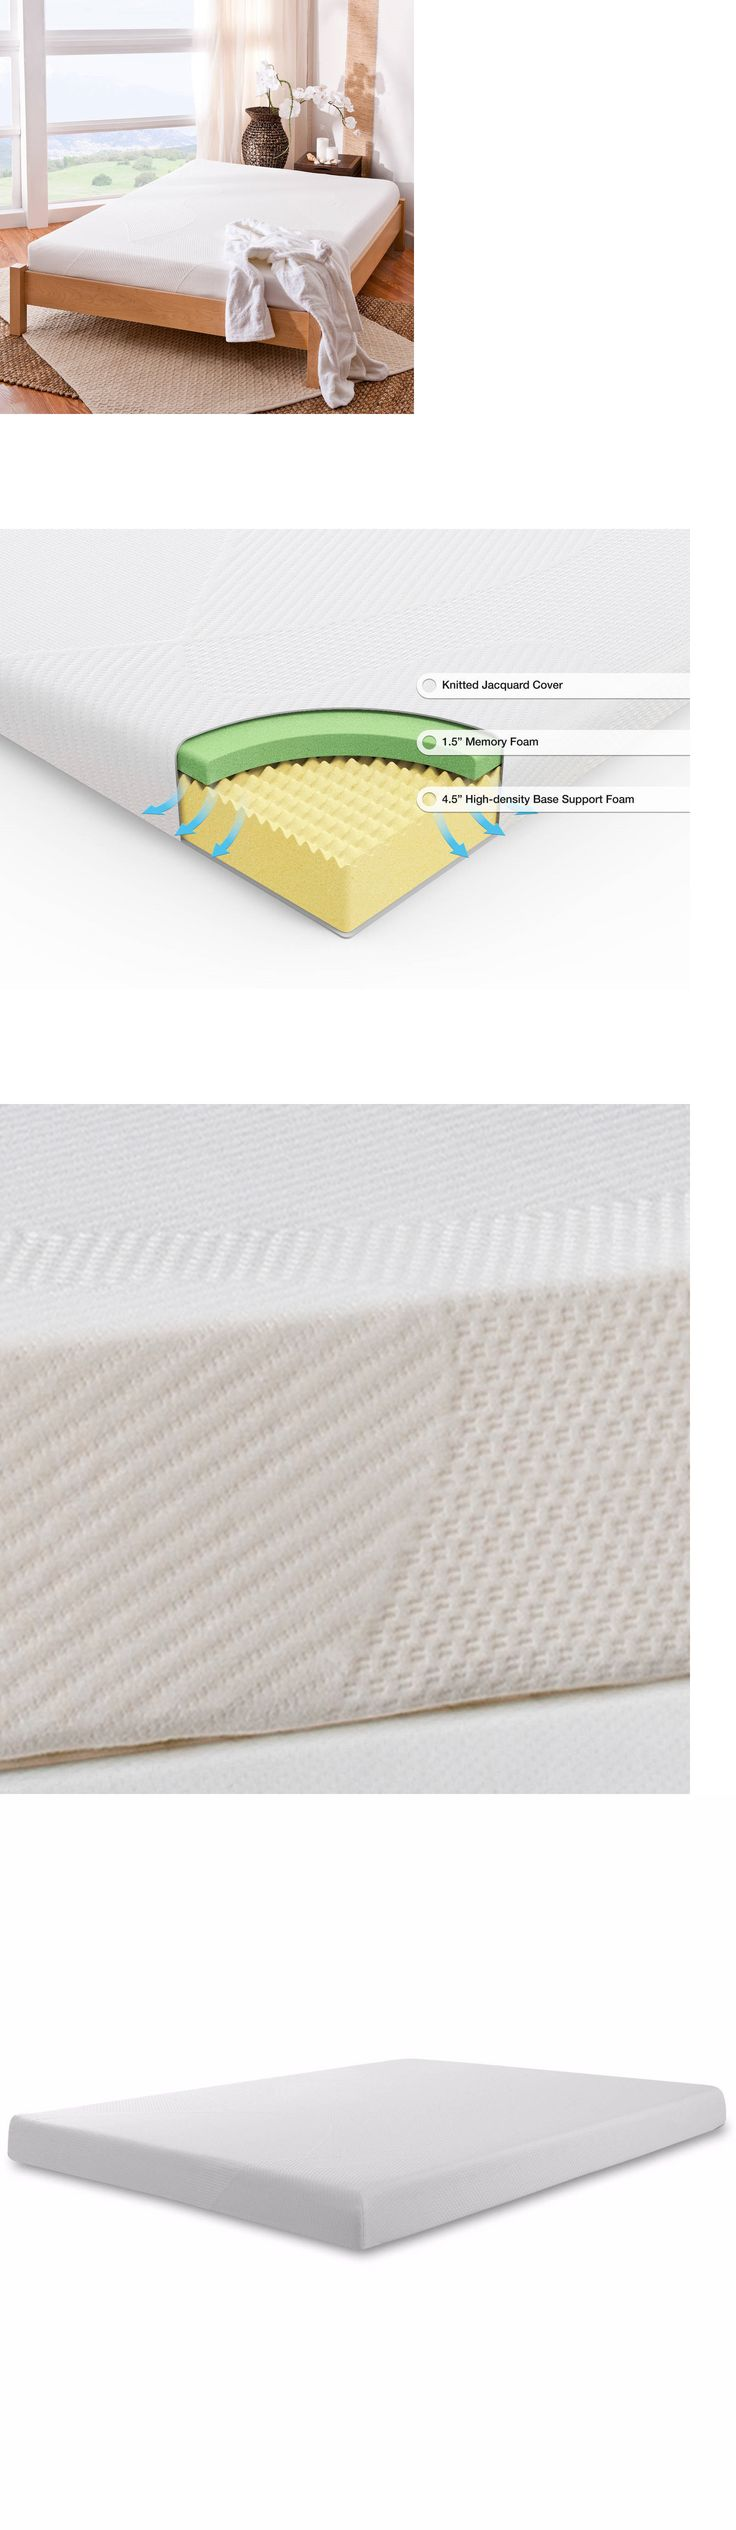 Bedding: 6 Inch Memory Foam Mattress Full Size Bed Cool Firm Sleep New Spa Sensations -> BUY IT NOW ONLY: $97.99 on eBay!